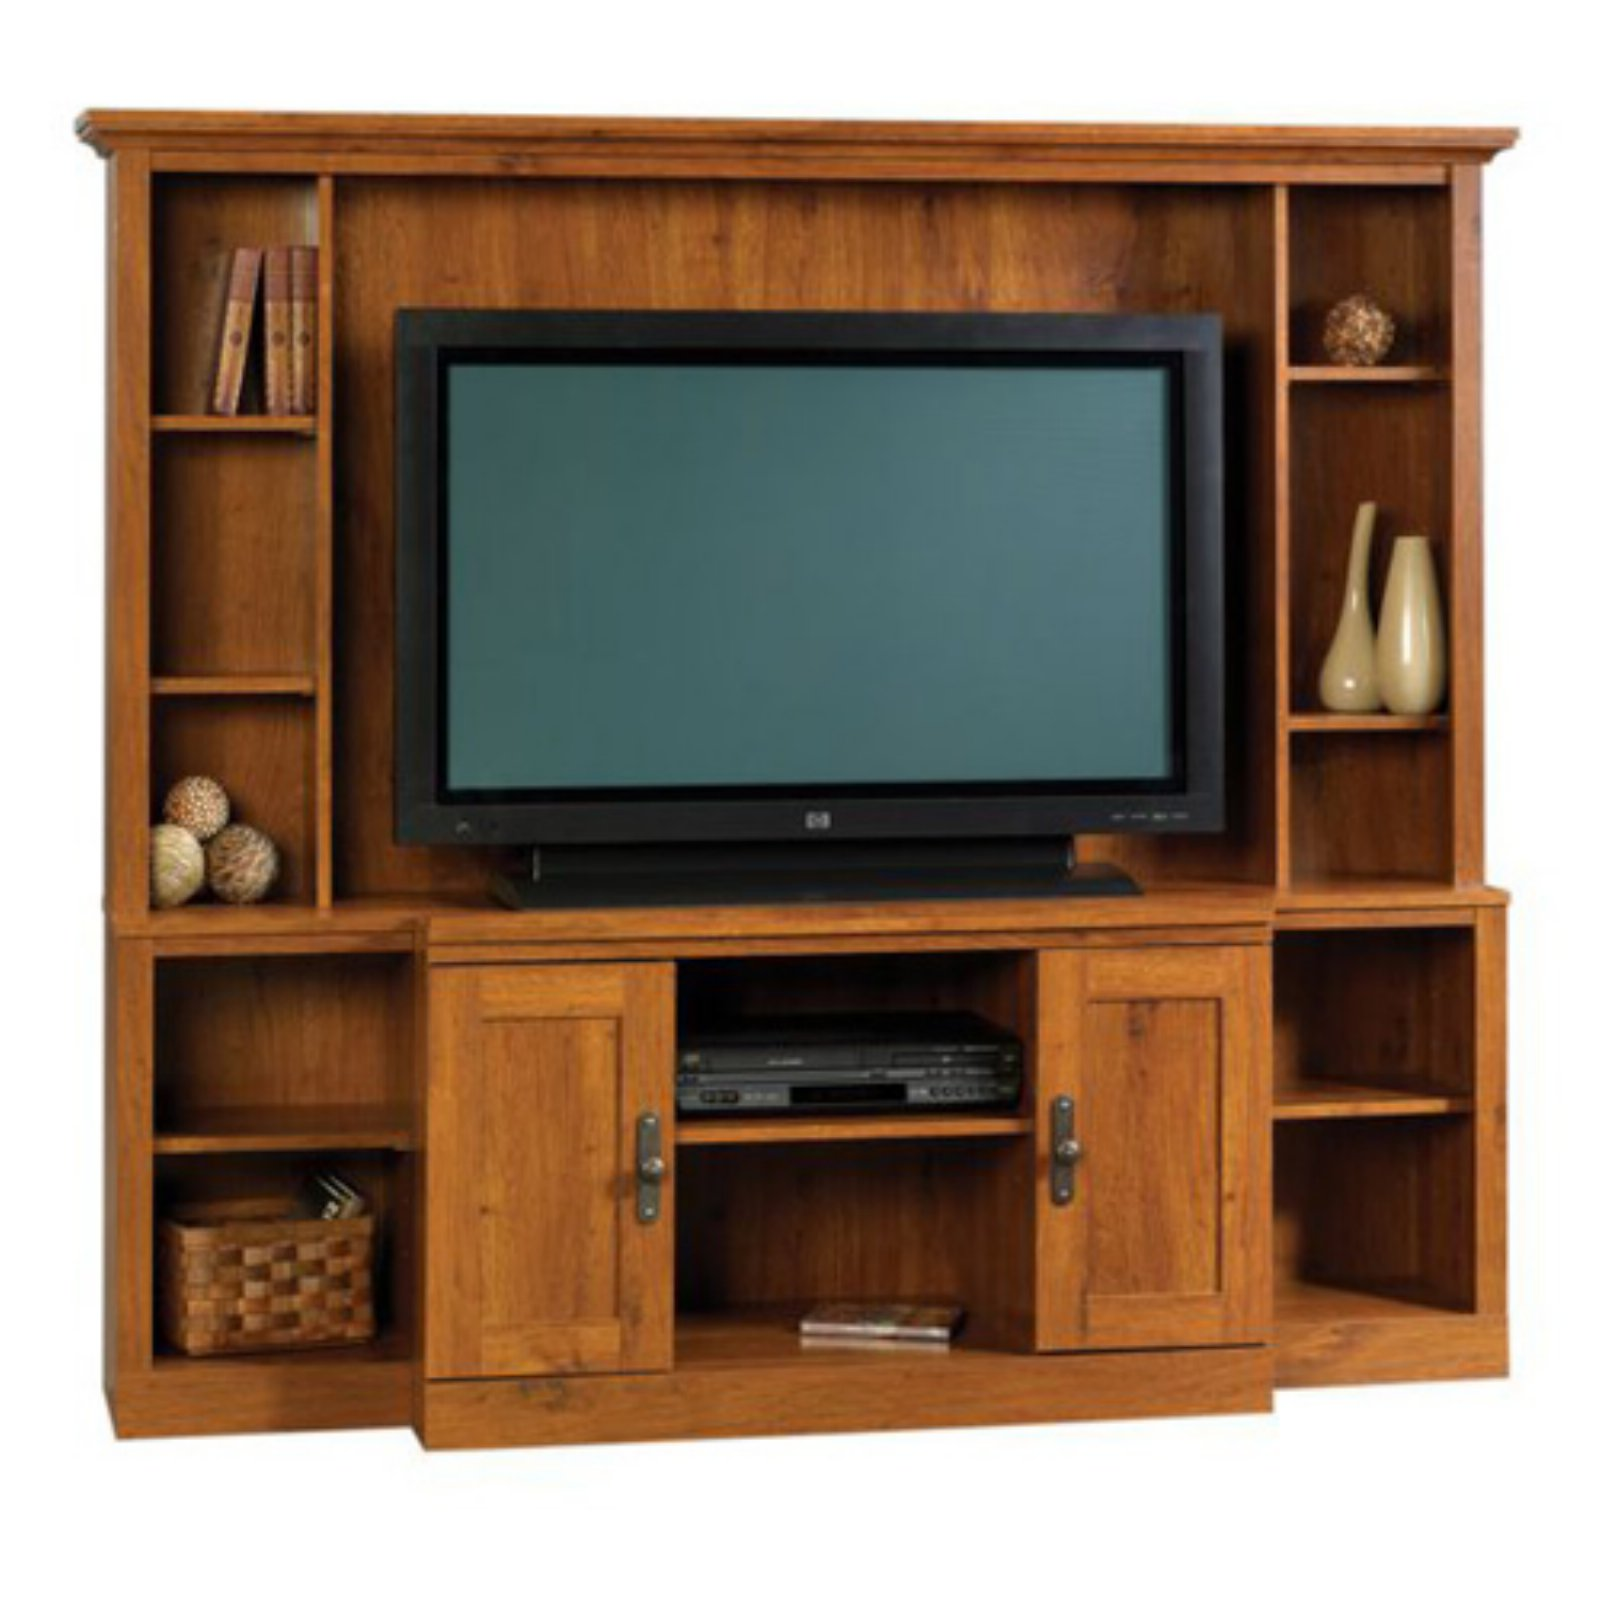 "Sauder Harvest Mill Home Theater for TVs up to 47"", Abbey Oak Finish"